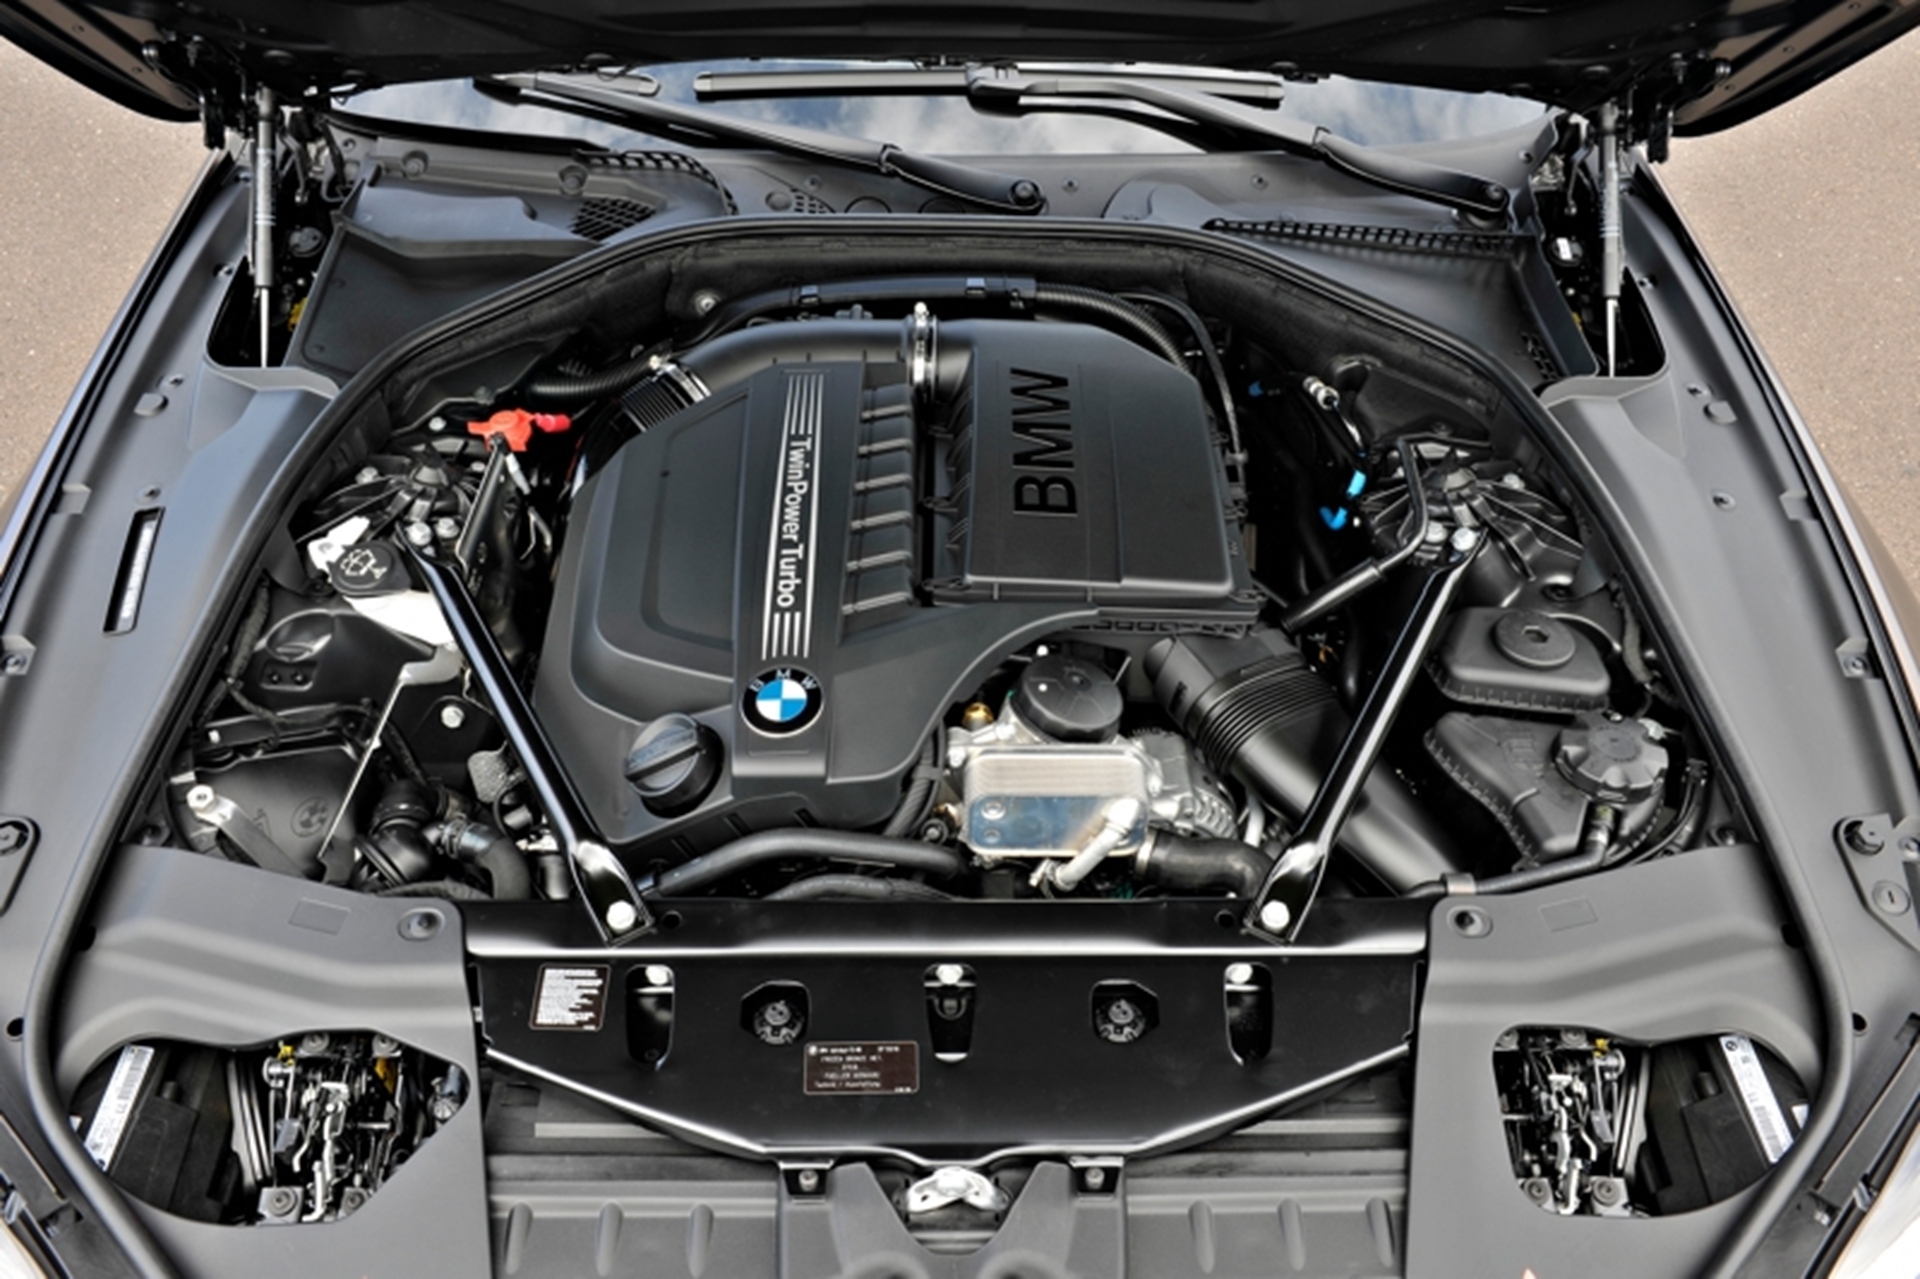 BMW-640i Engine